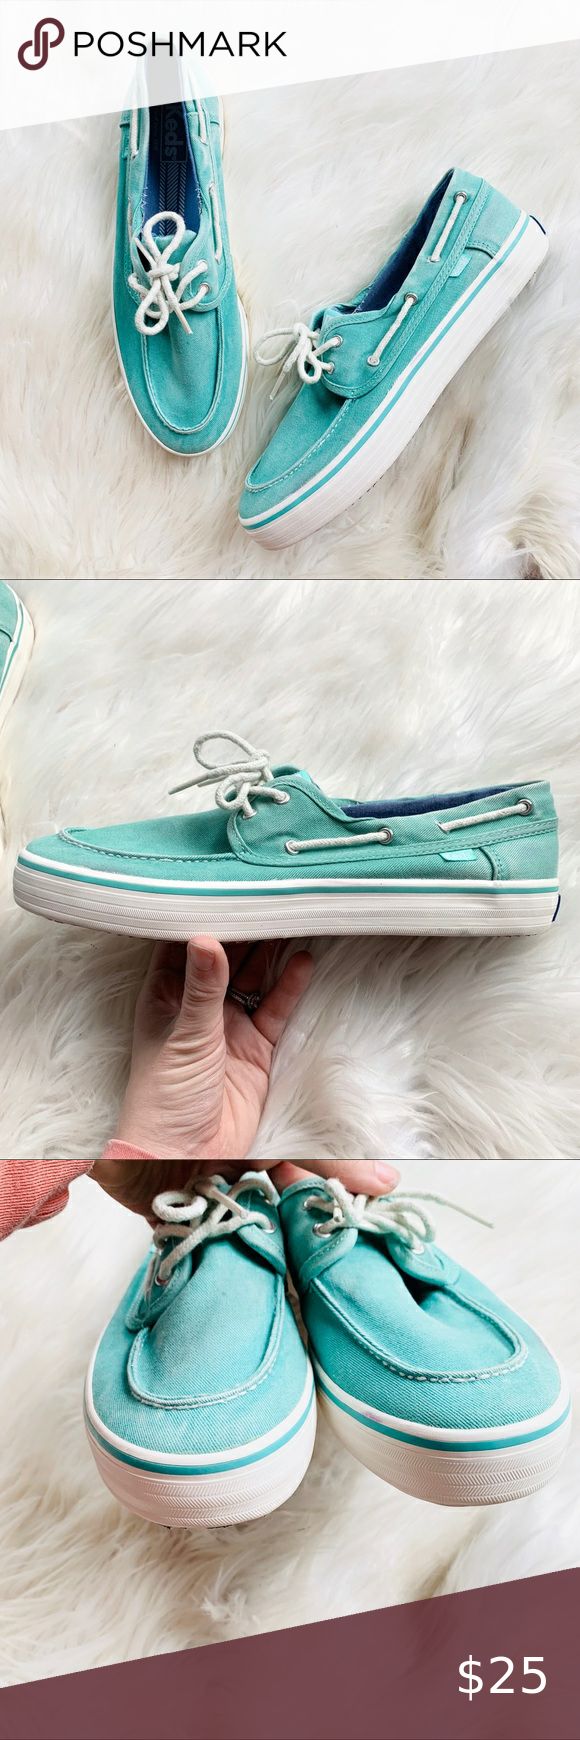 Boat shoes, Canvas boat shoes, Keds